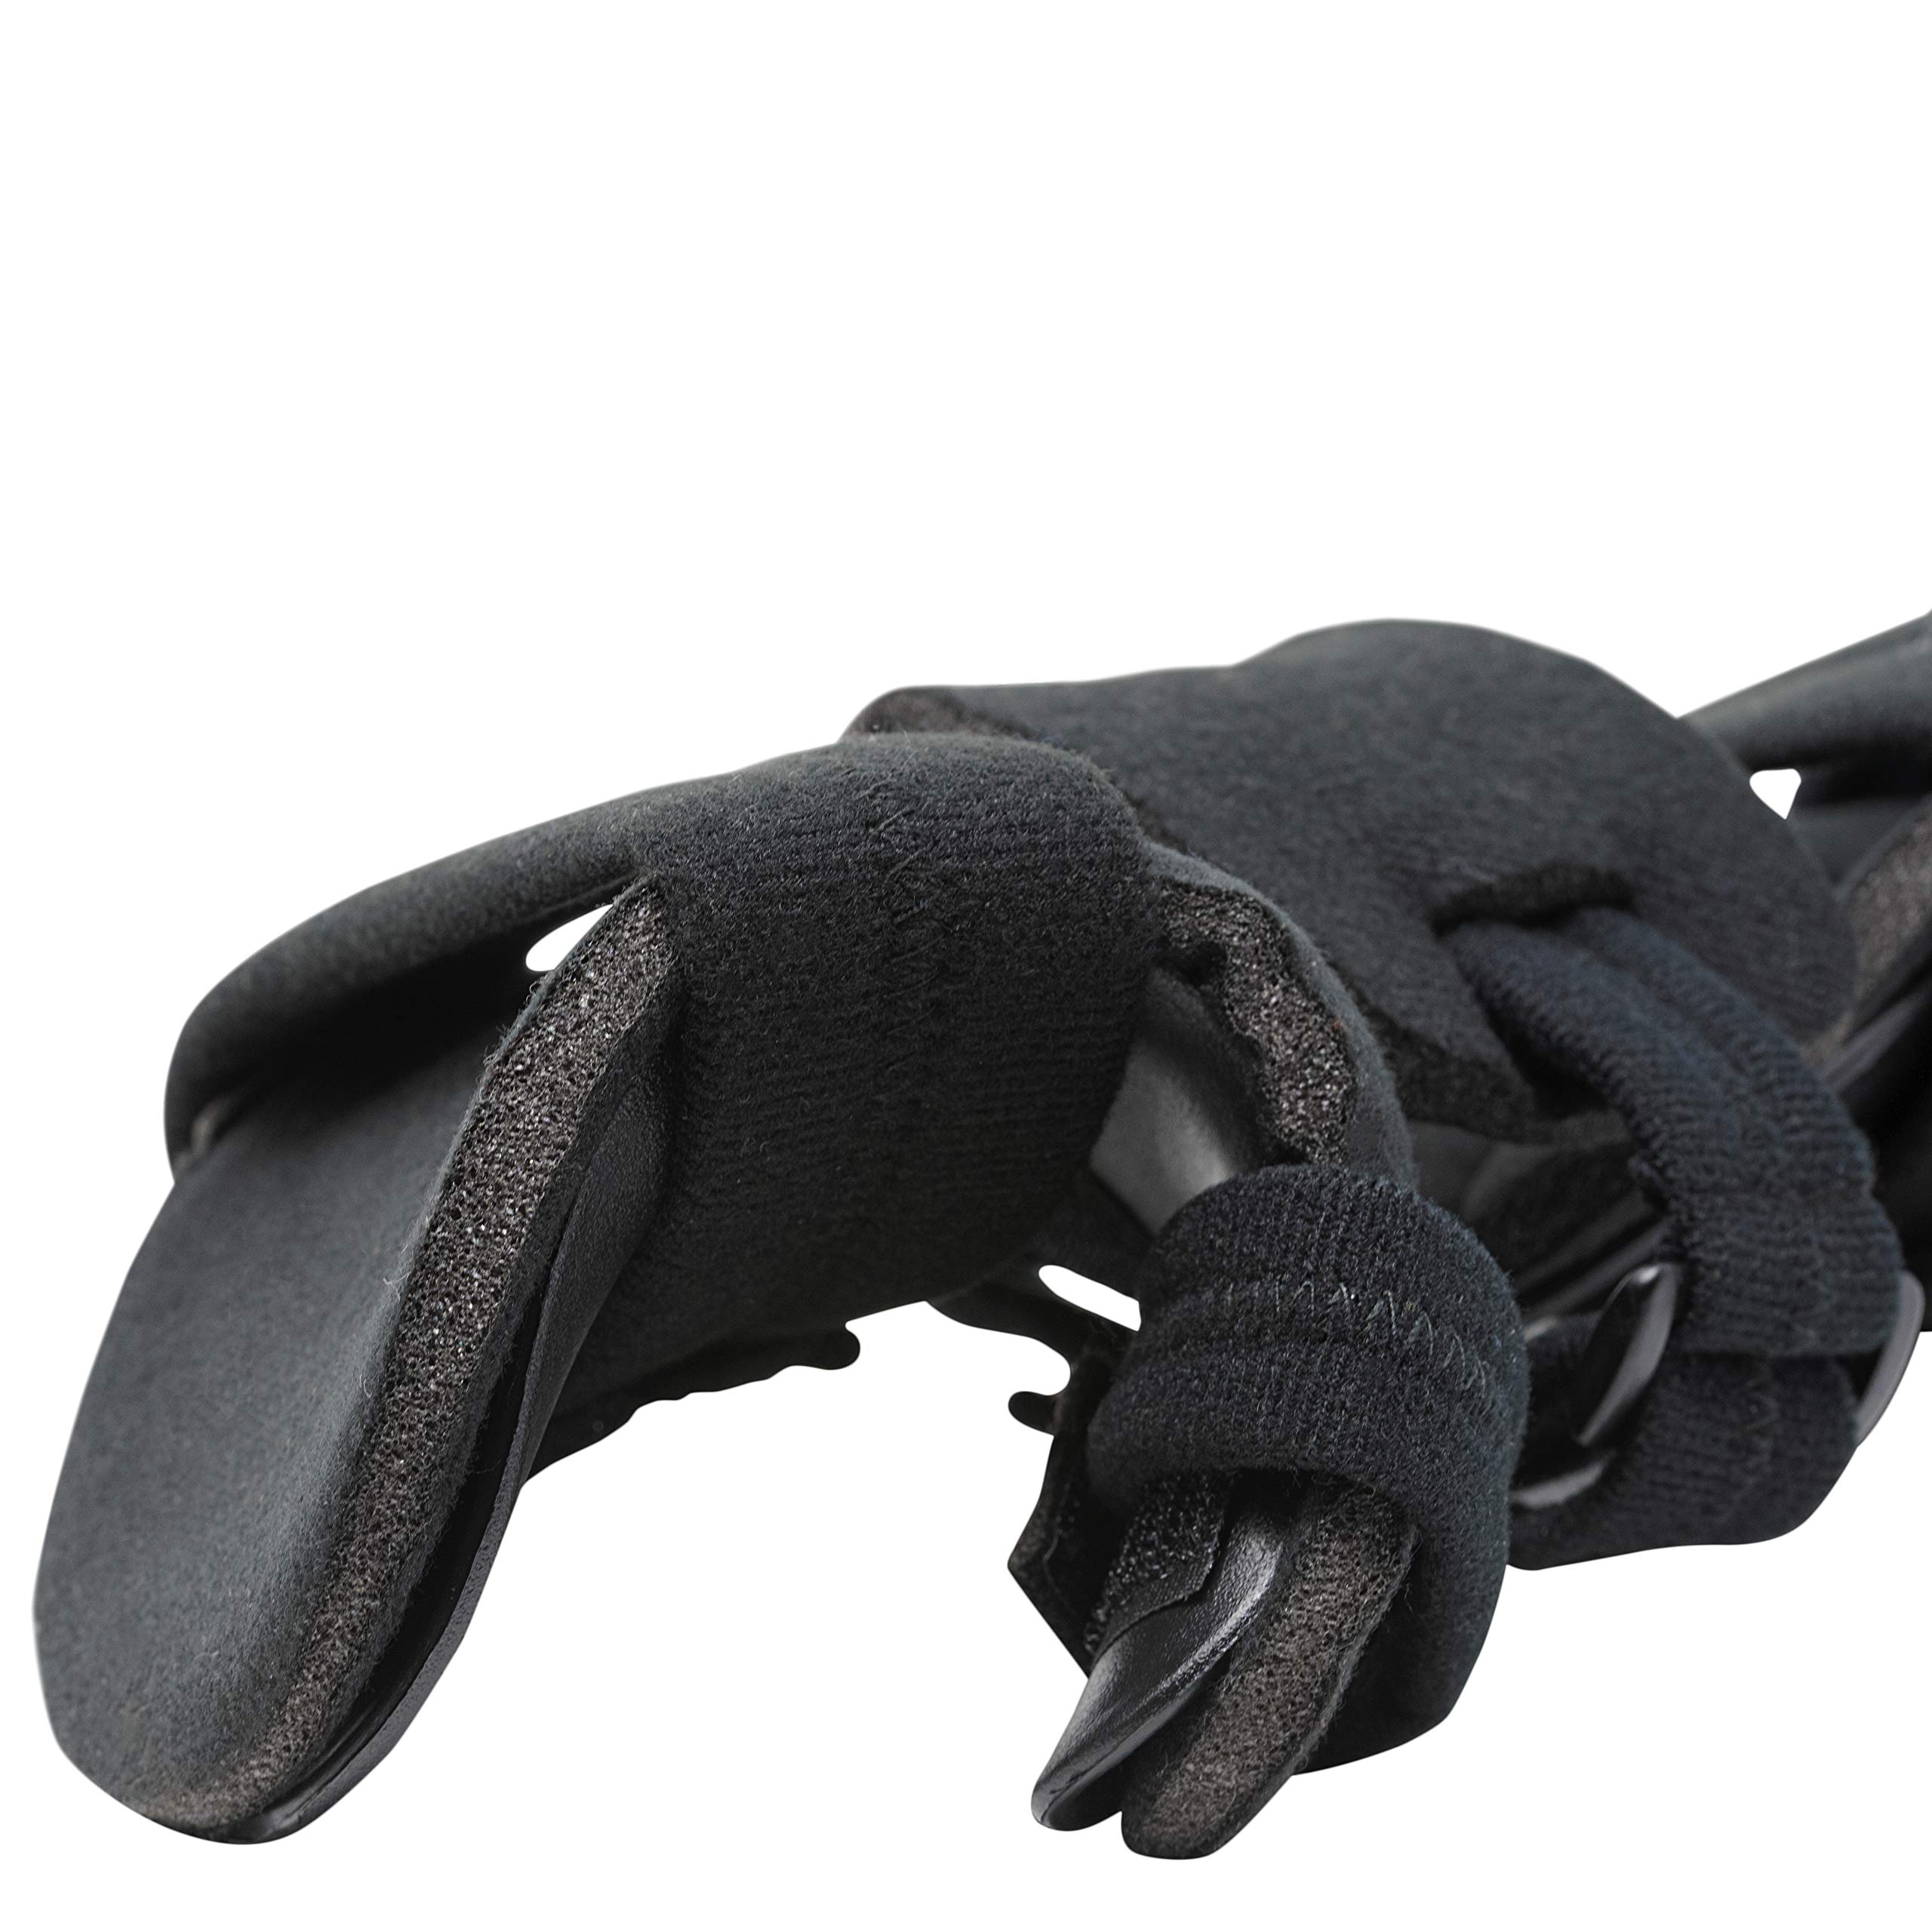 Stroke Hand Splint- Soft Resting Hand Splint for Flexion Contractures, Comfortably Stretch and Rest Hands for Long Term Ease with Functional Hand Splint, an American Heritage Industries(Right, Medium) by American Heritage Industries (Image #3)